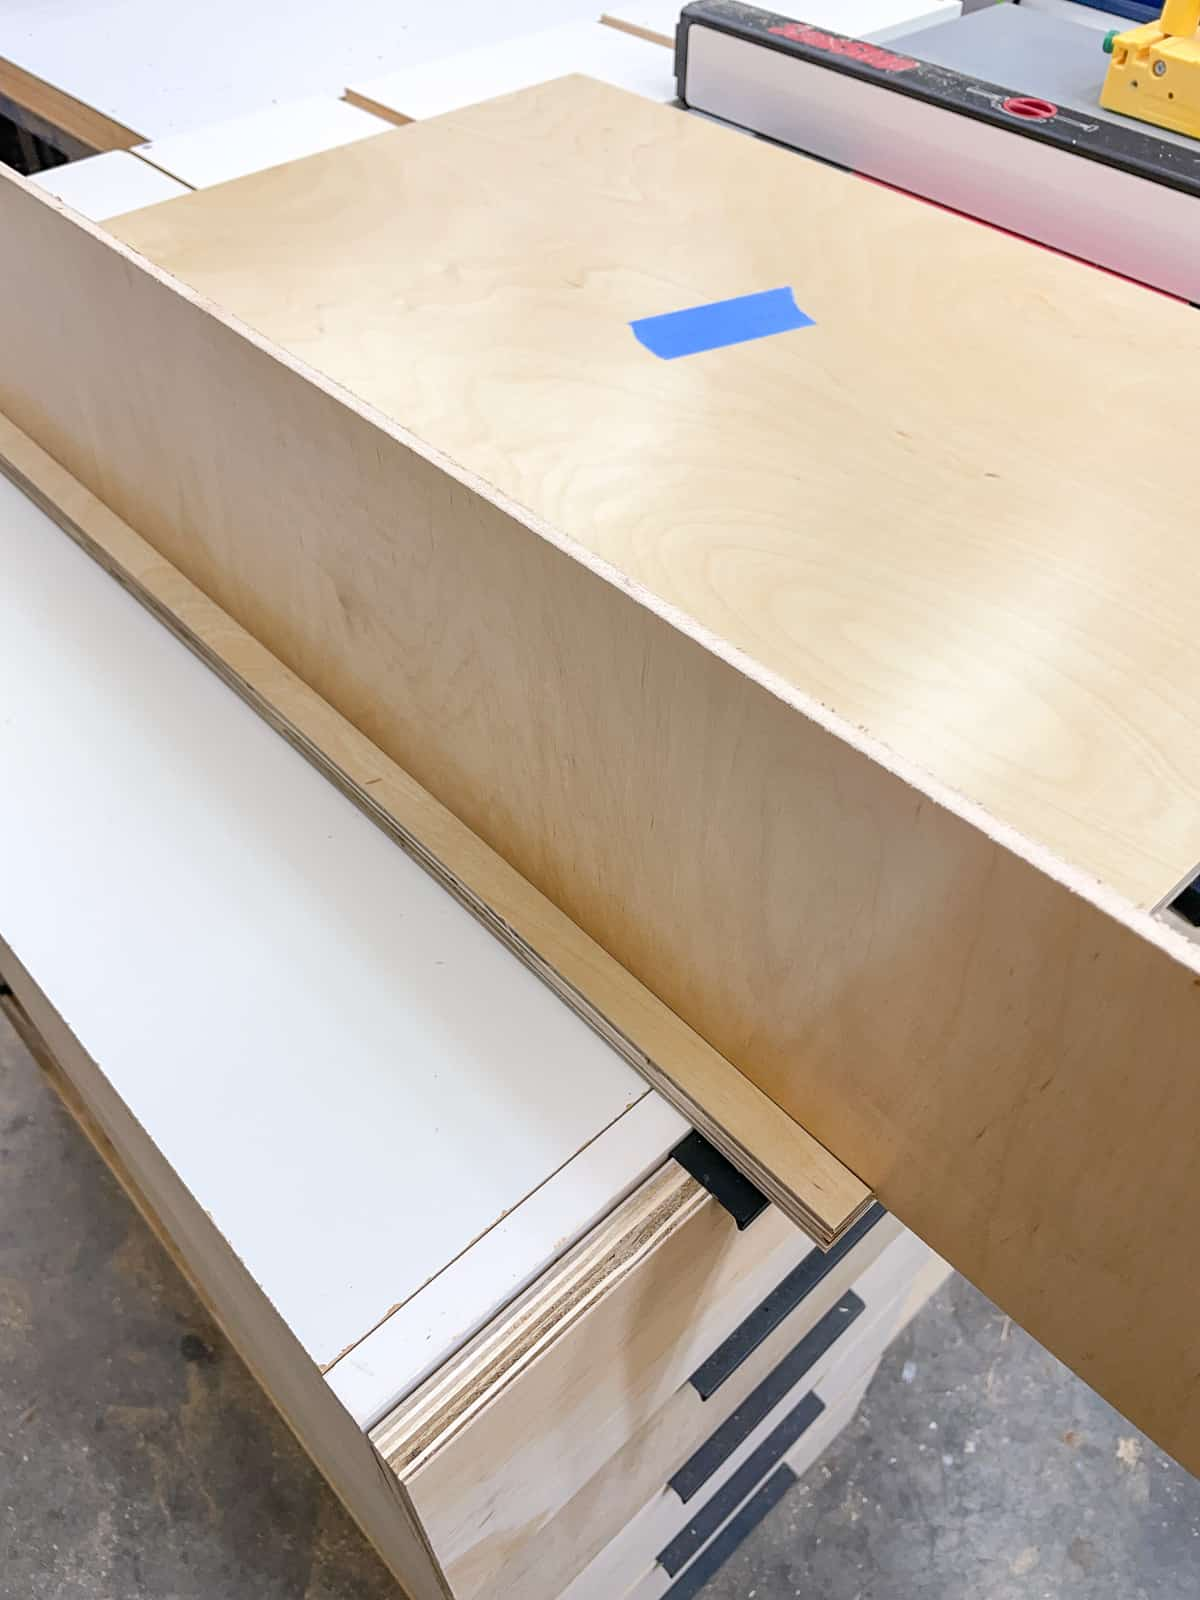 testing fit of back panel inside groove of the side piece of the cabinet